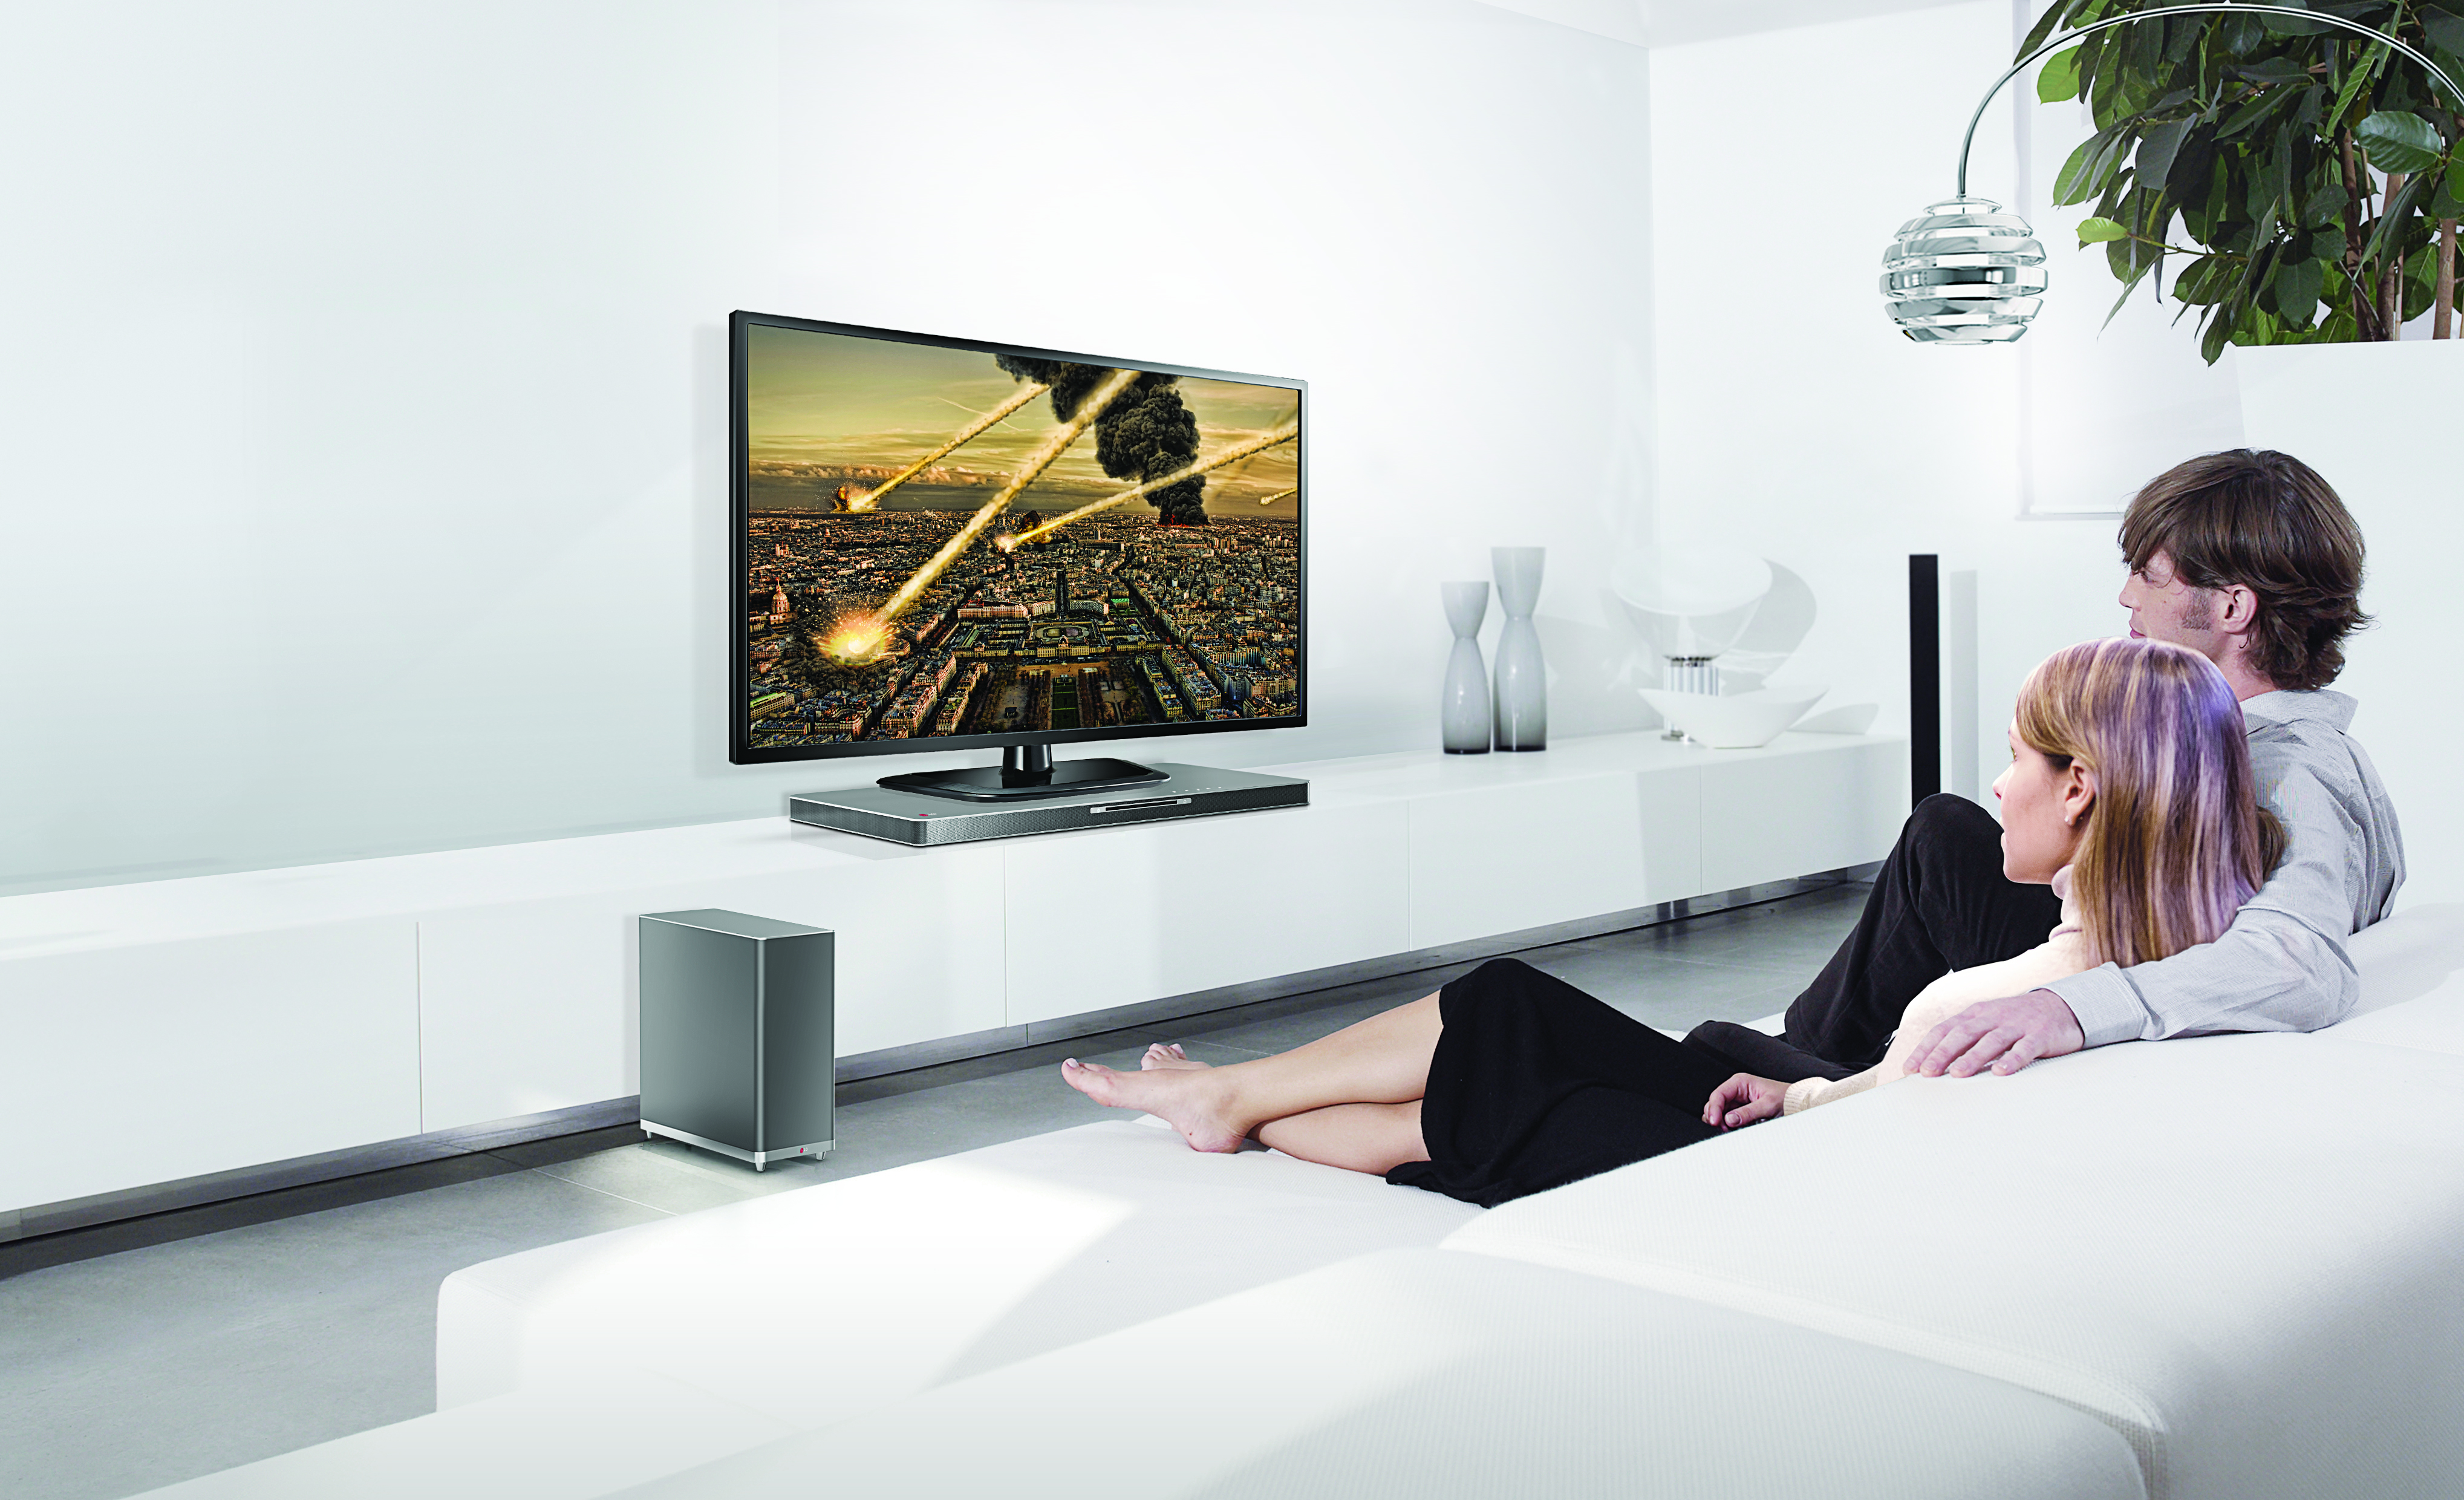 Two models watching TV on the LG SoundPlate model LAB540 while enjoying an impressive sound experience